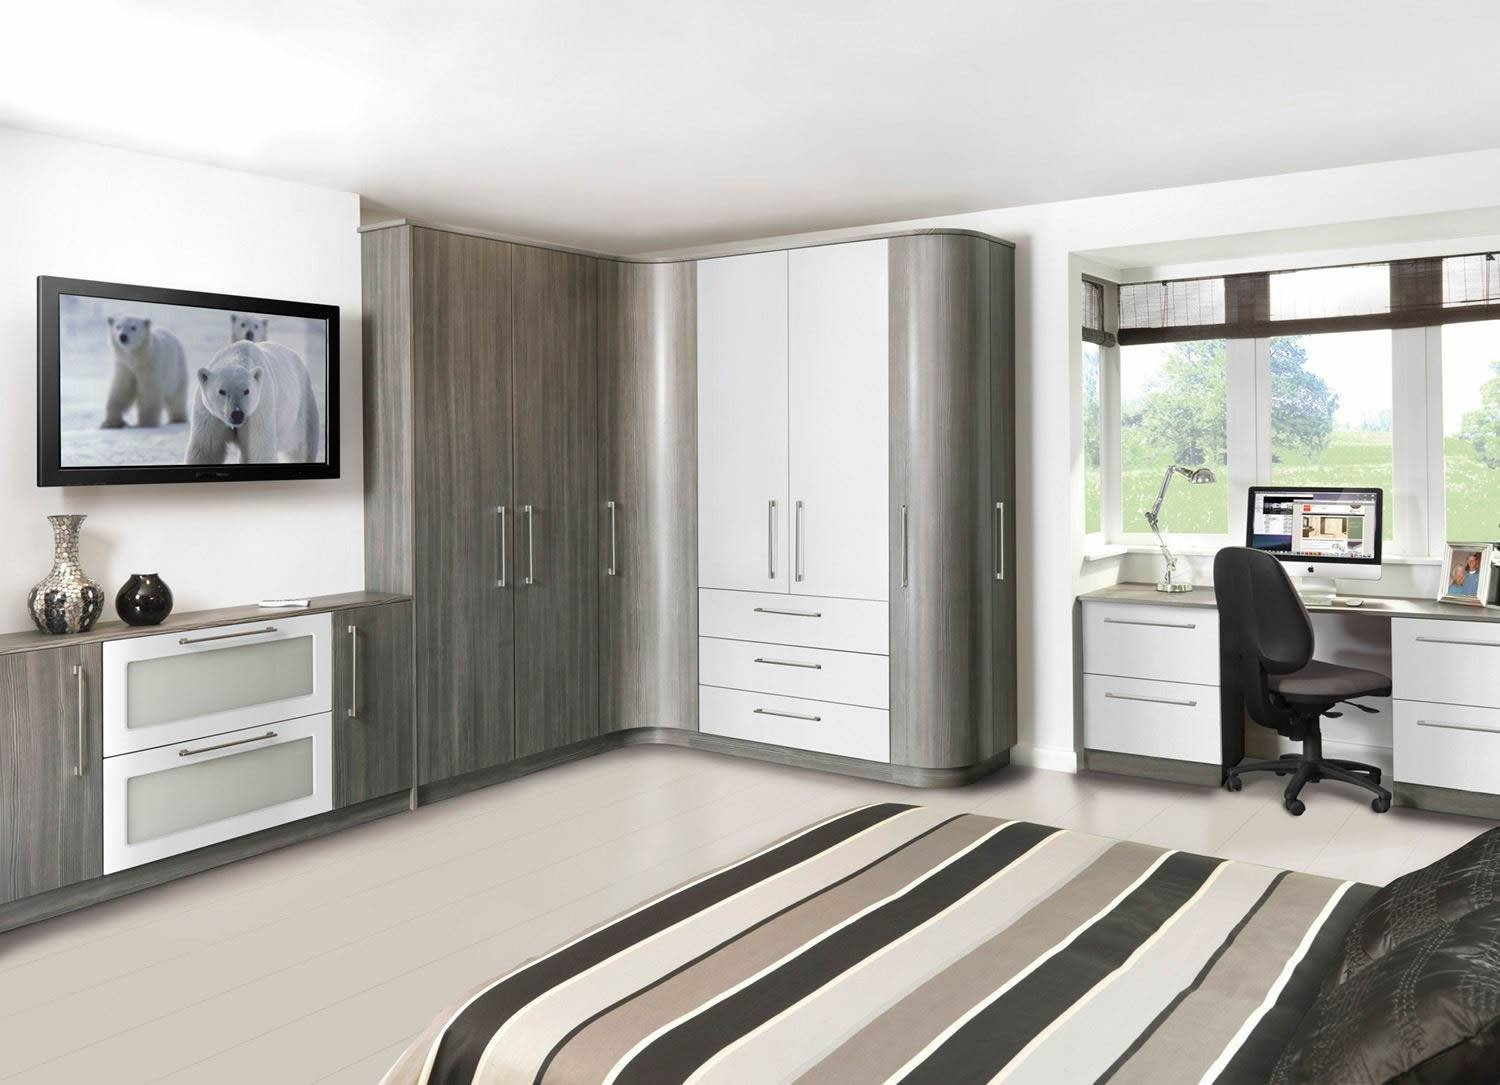 Fitted Wardrobes For Your Bedroom Telford Shropshire – Intended For Drawers For Fitted Wardrobes (View 9 of 30)